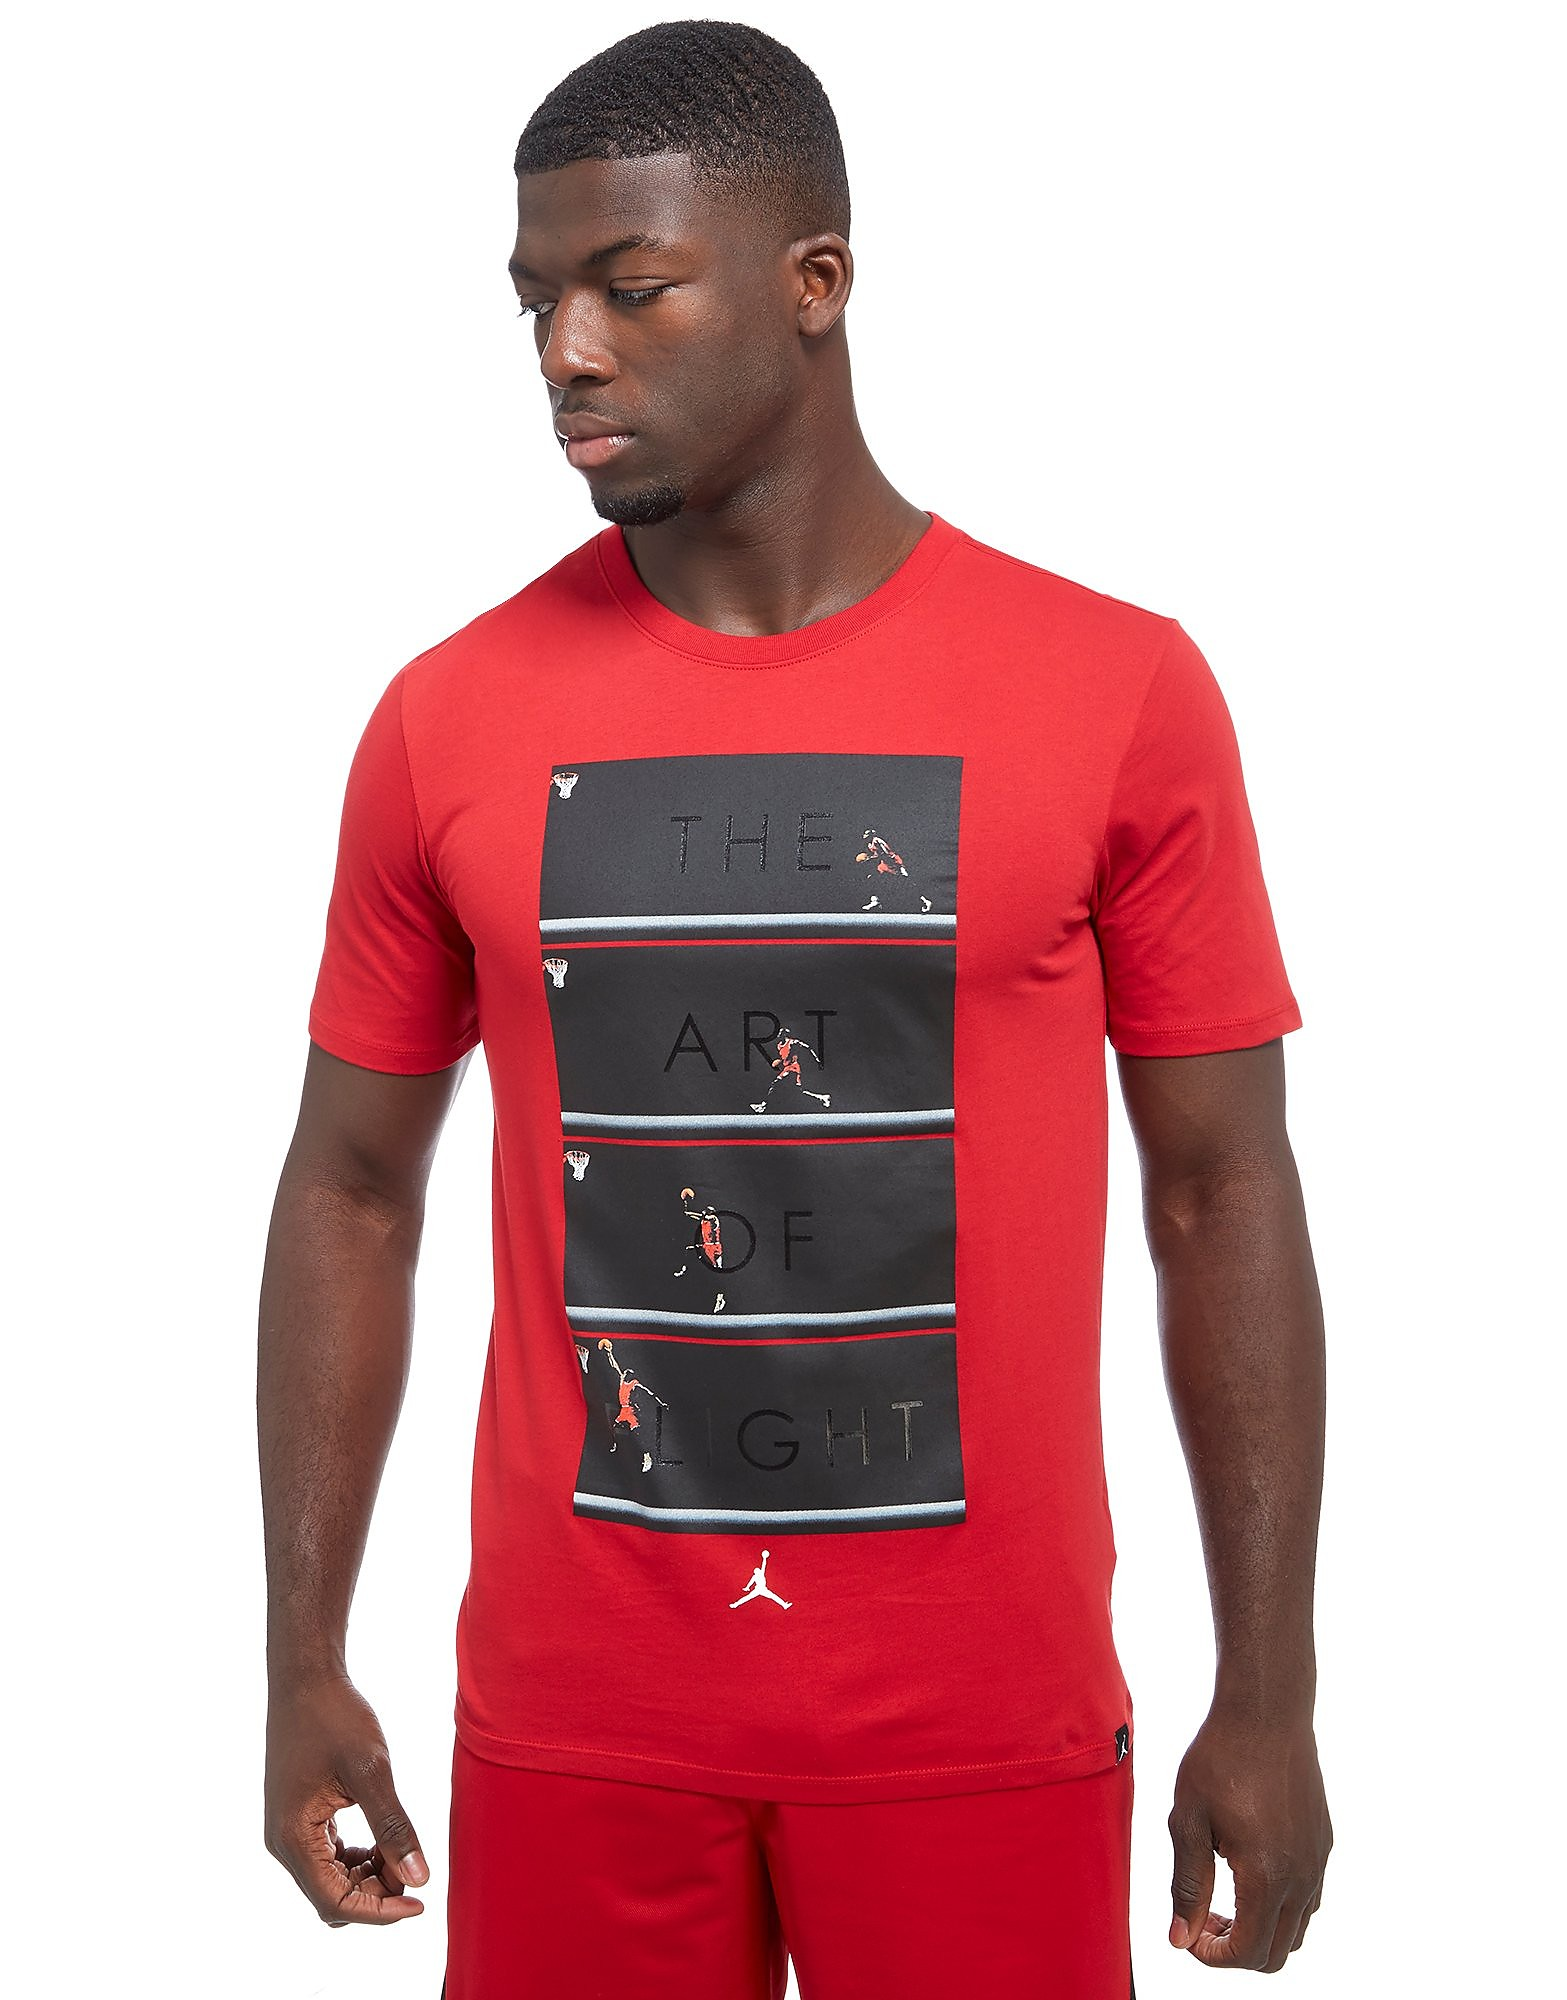 Jordan Art of Flight T-Shirt